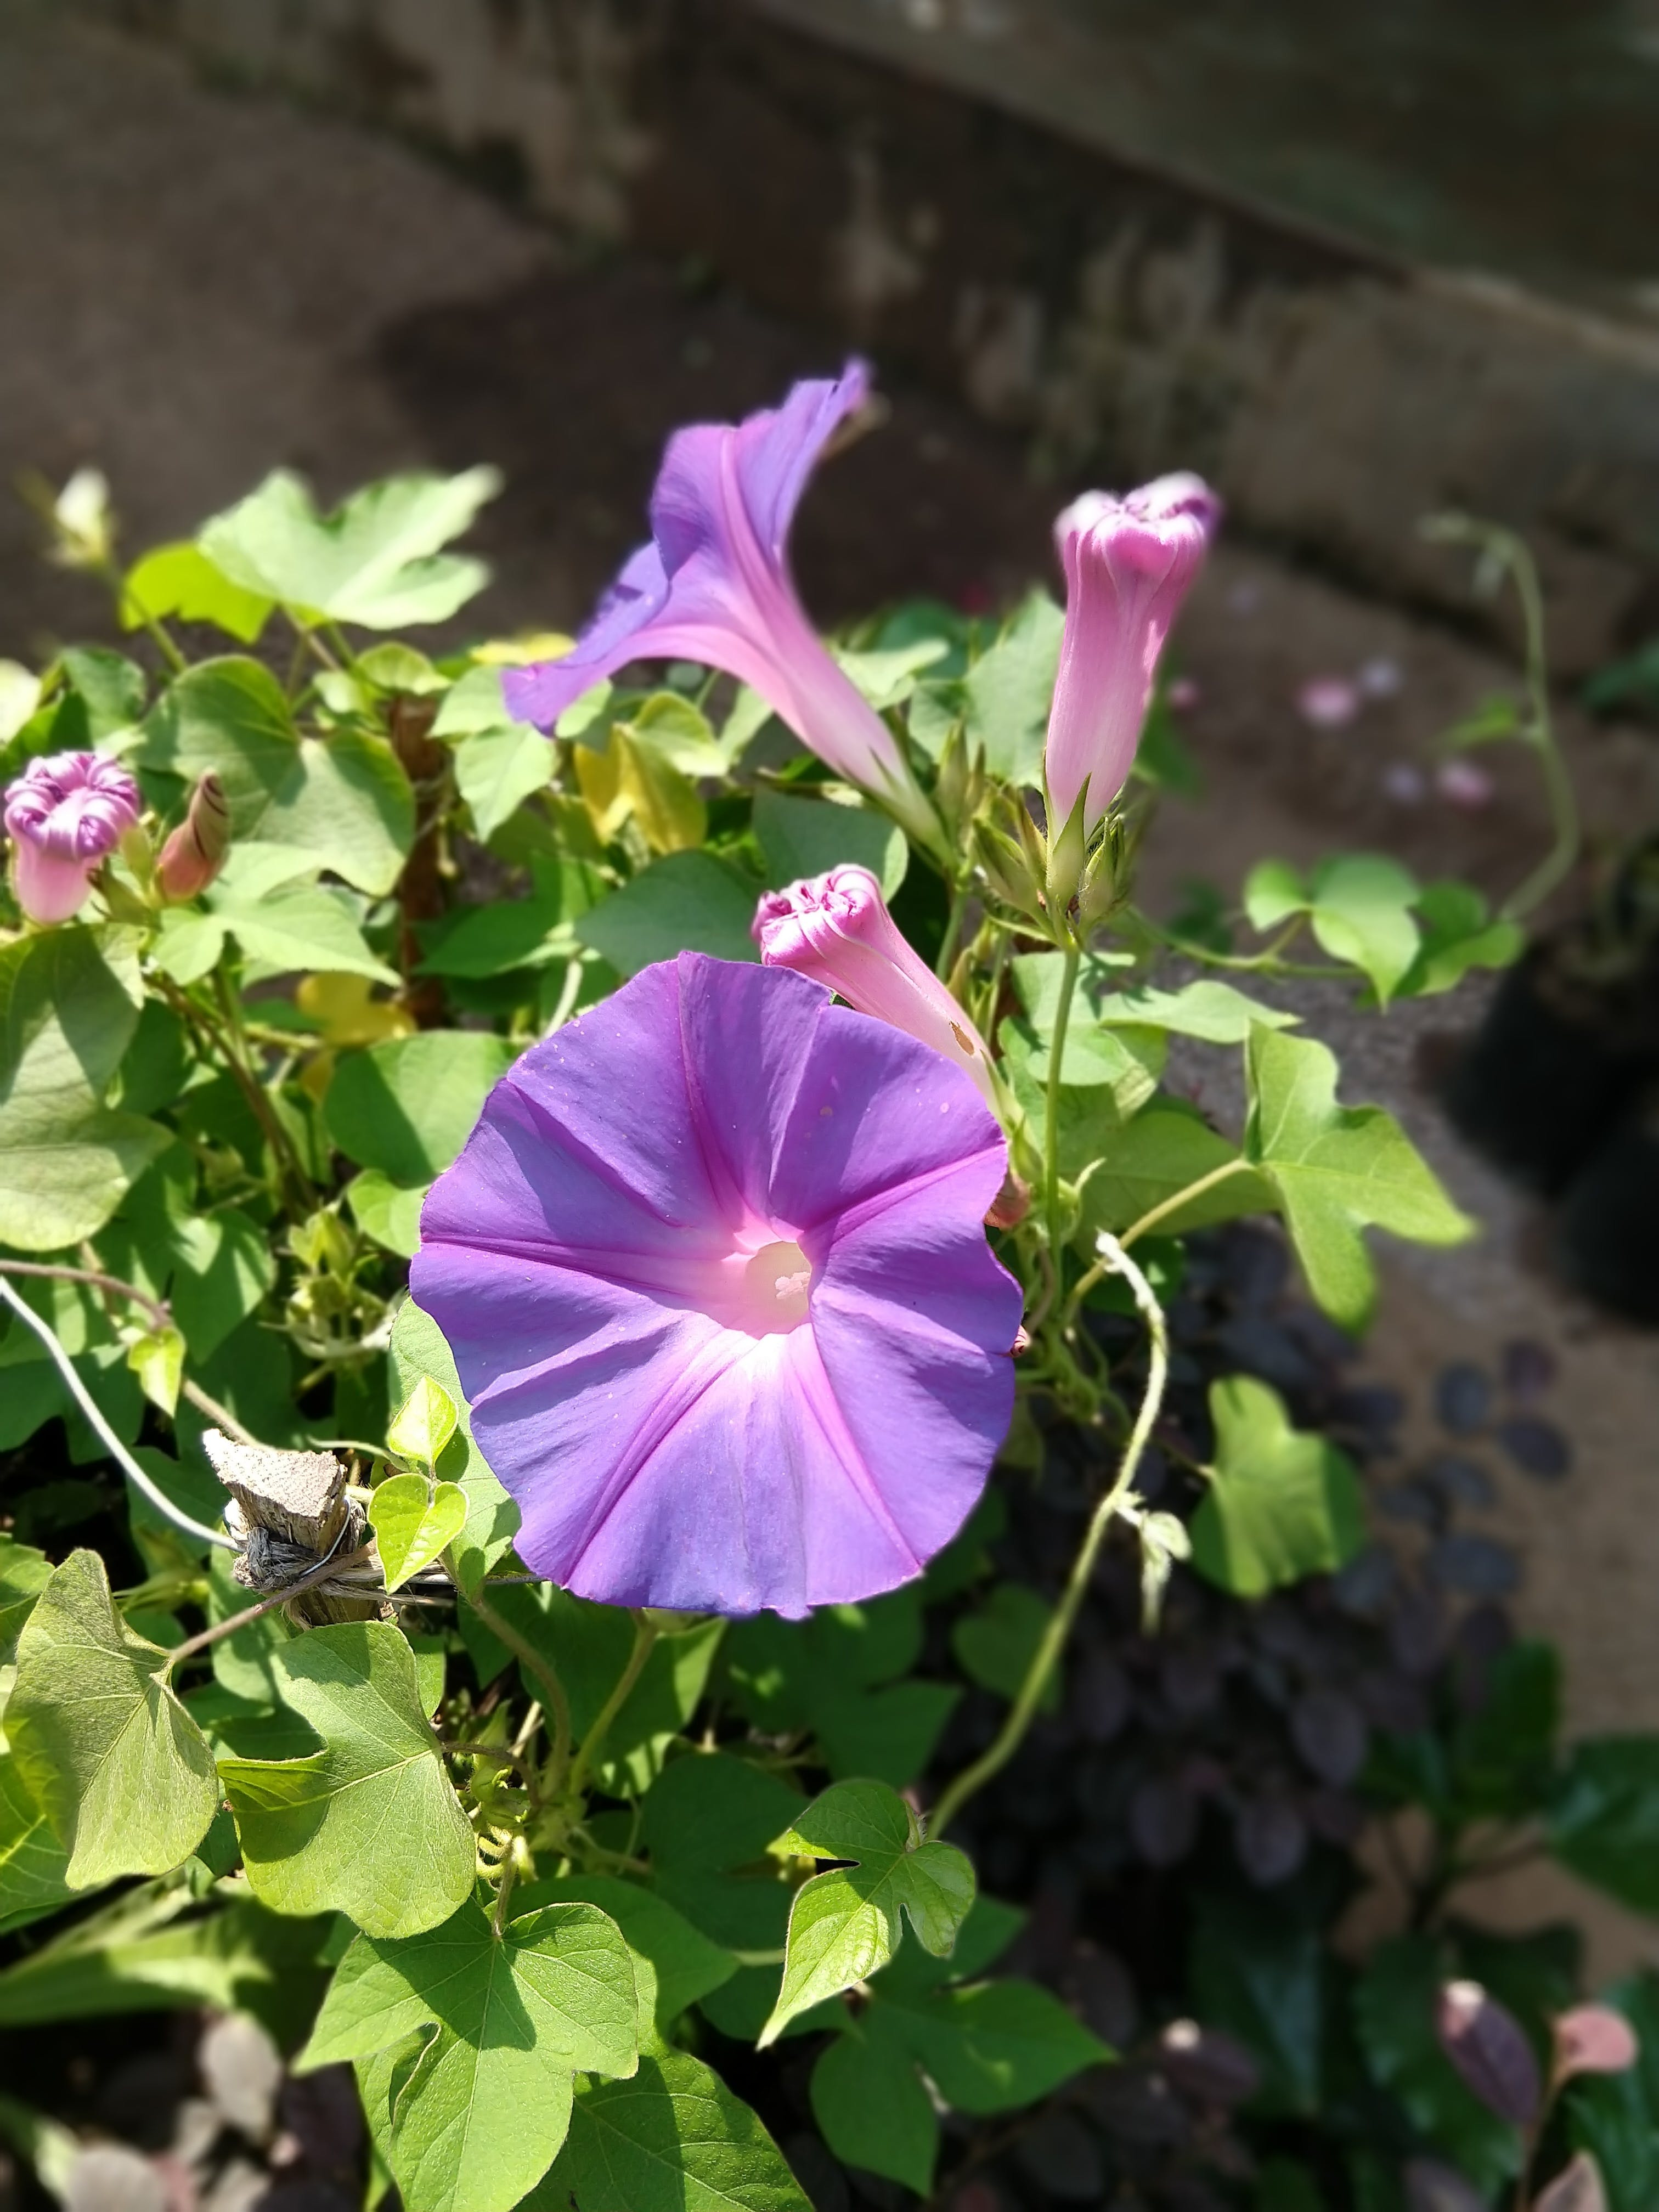 Free stock photo of violet flower